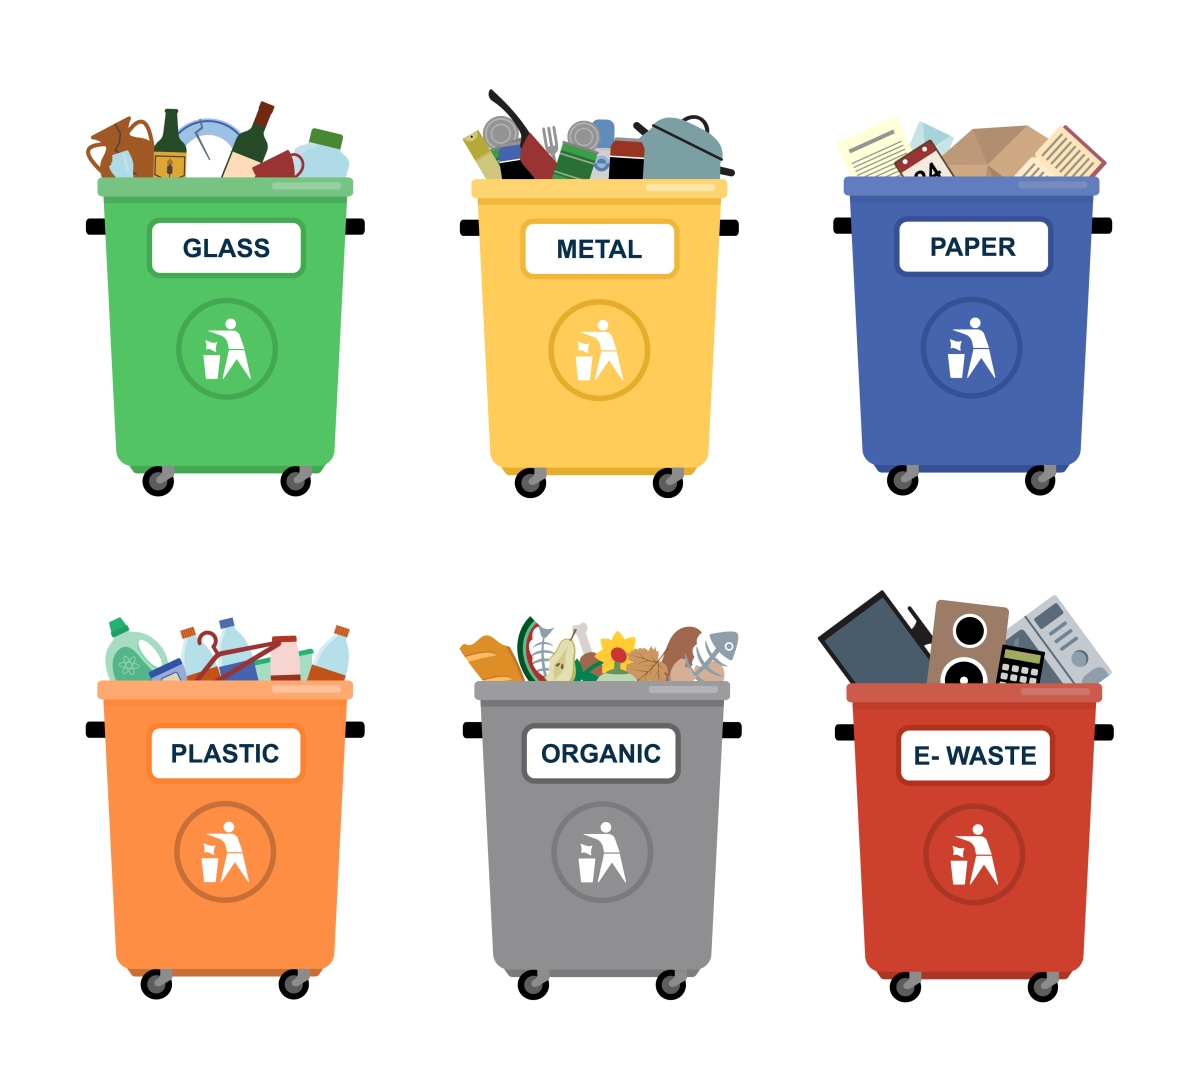 All Hazards Waste Management Planning Wmp Tool: Turning Waste Into A Resource